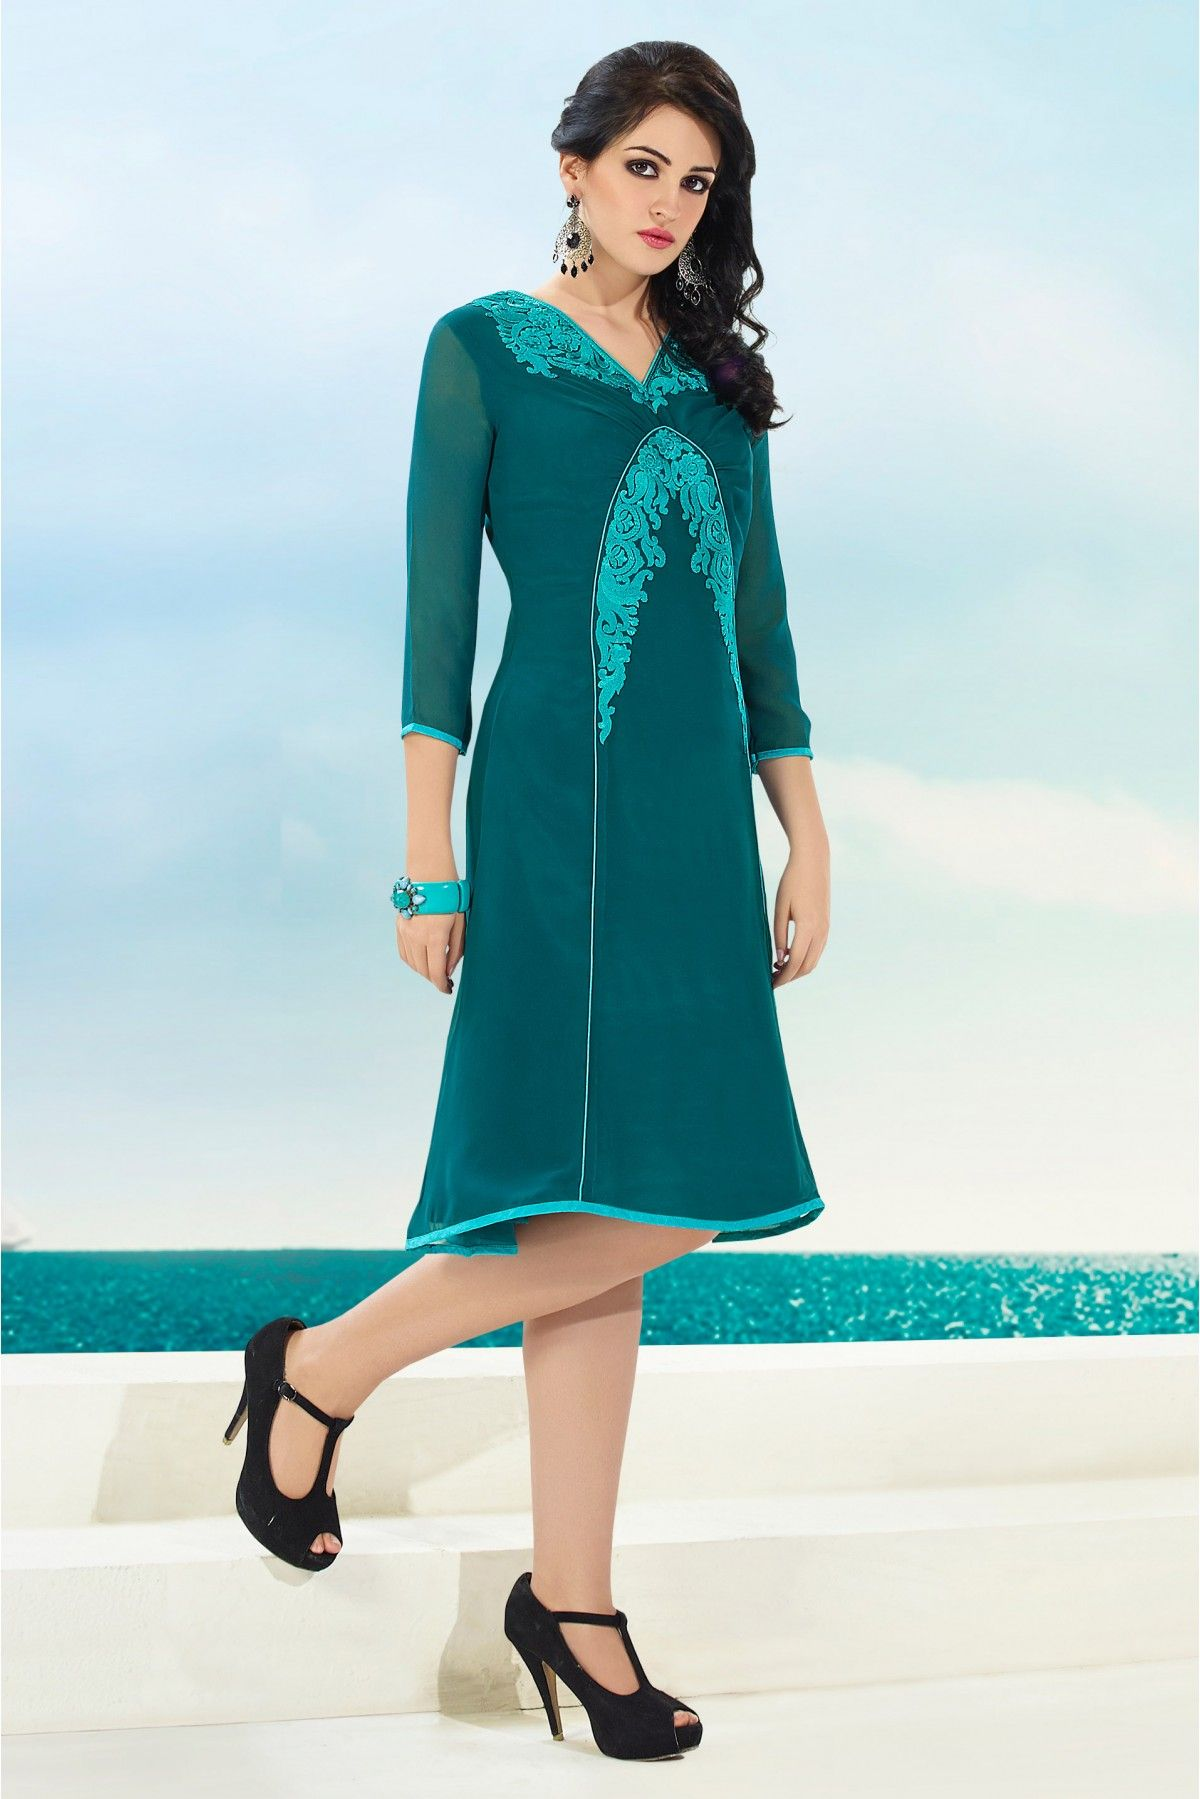 2933e6c167 Georgette Party Wear Kurti in Sea Green Colour.It is crafted with Embroidery  Design.